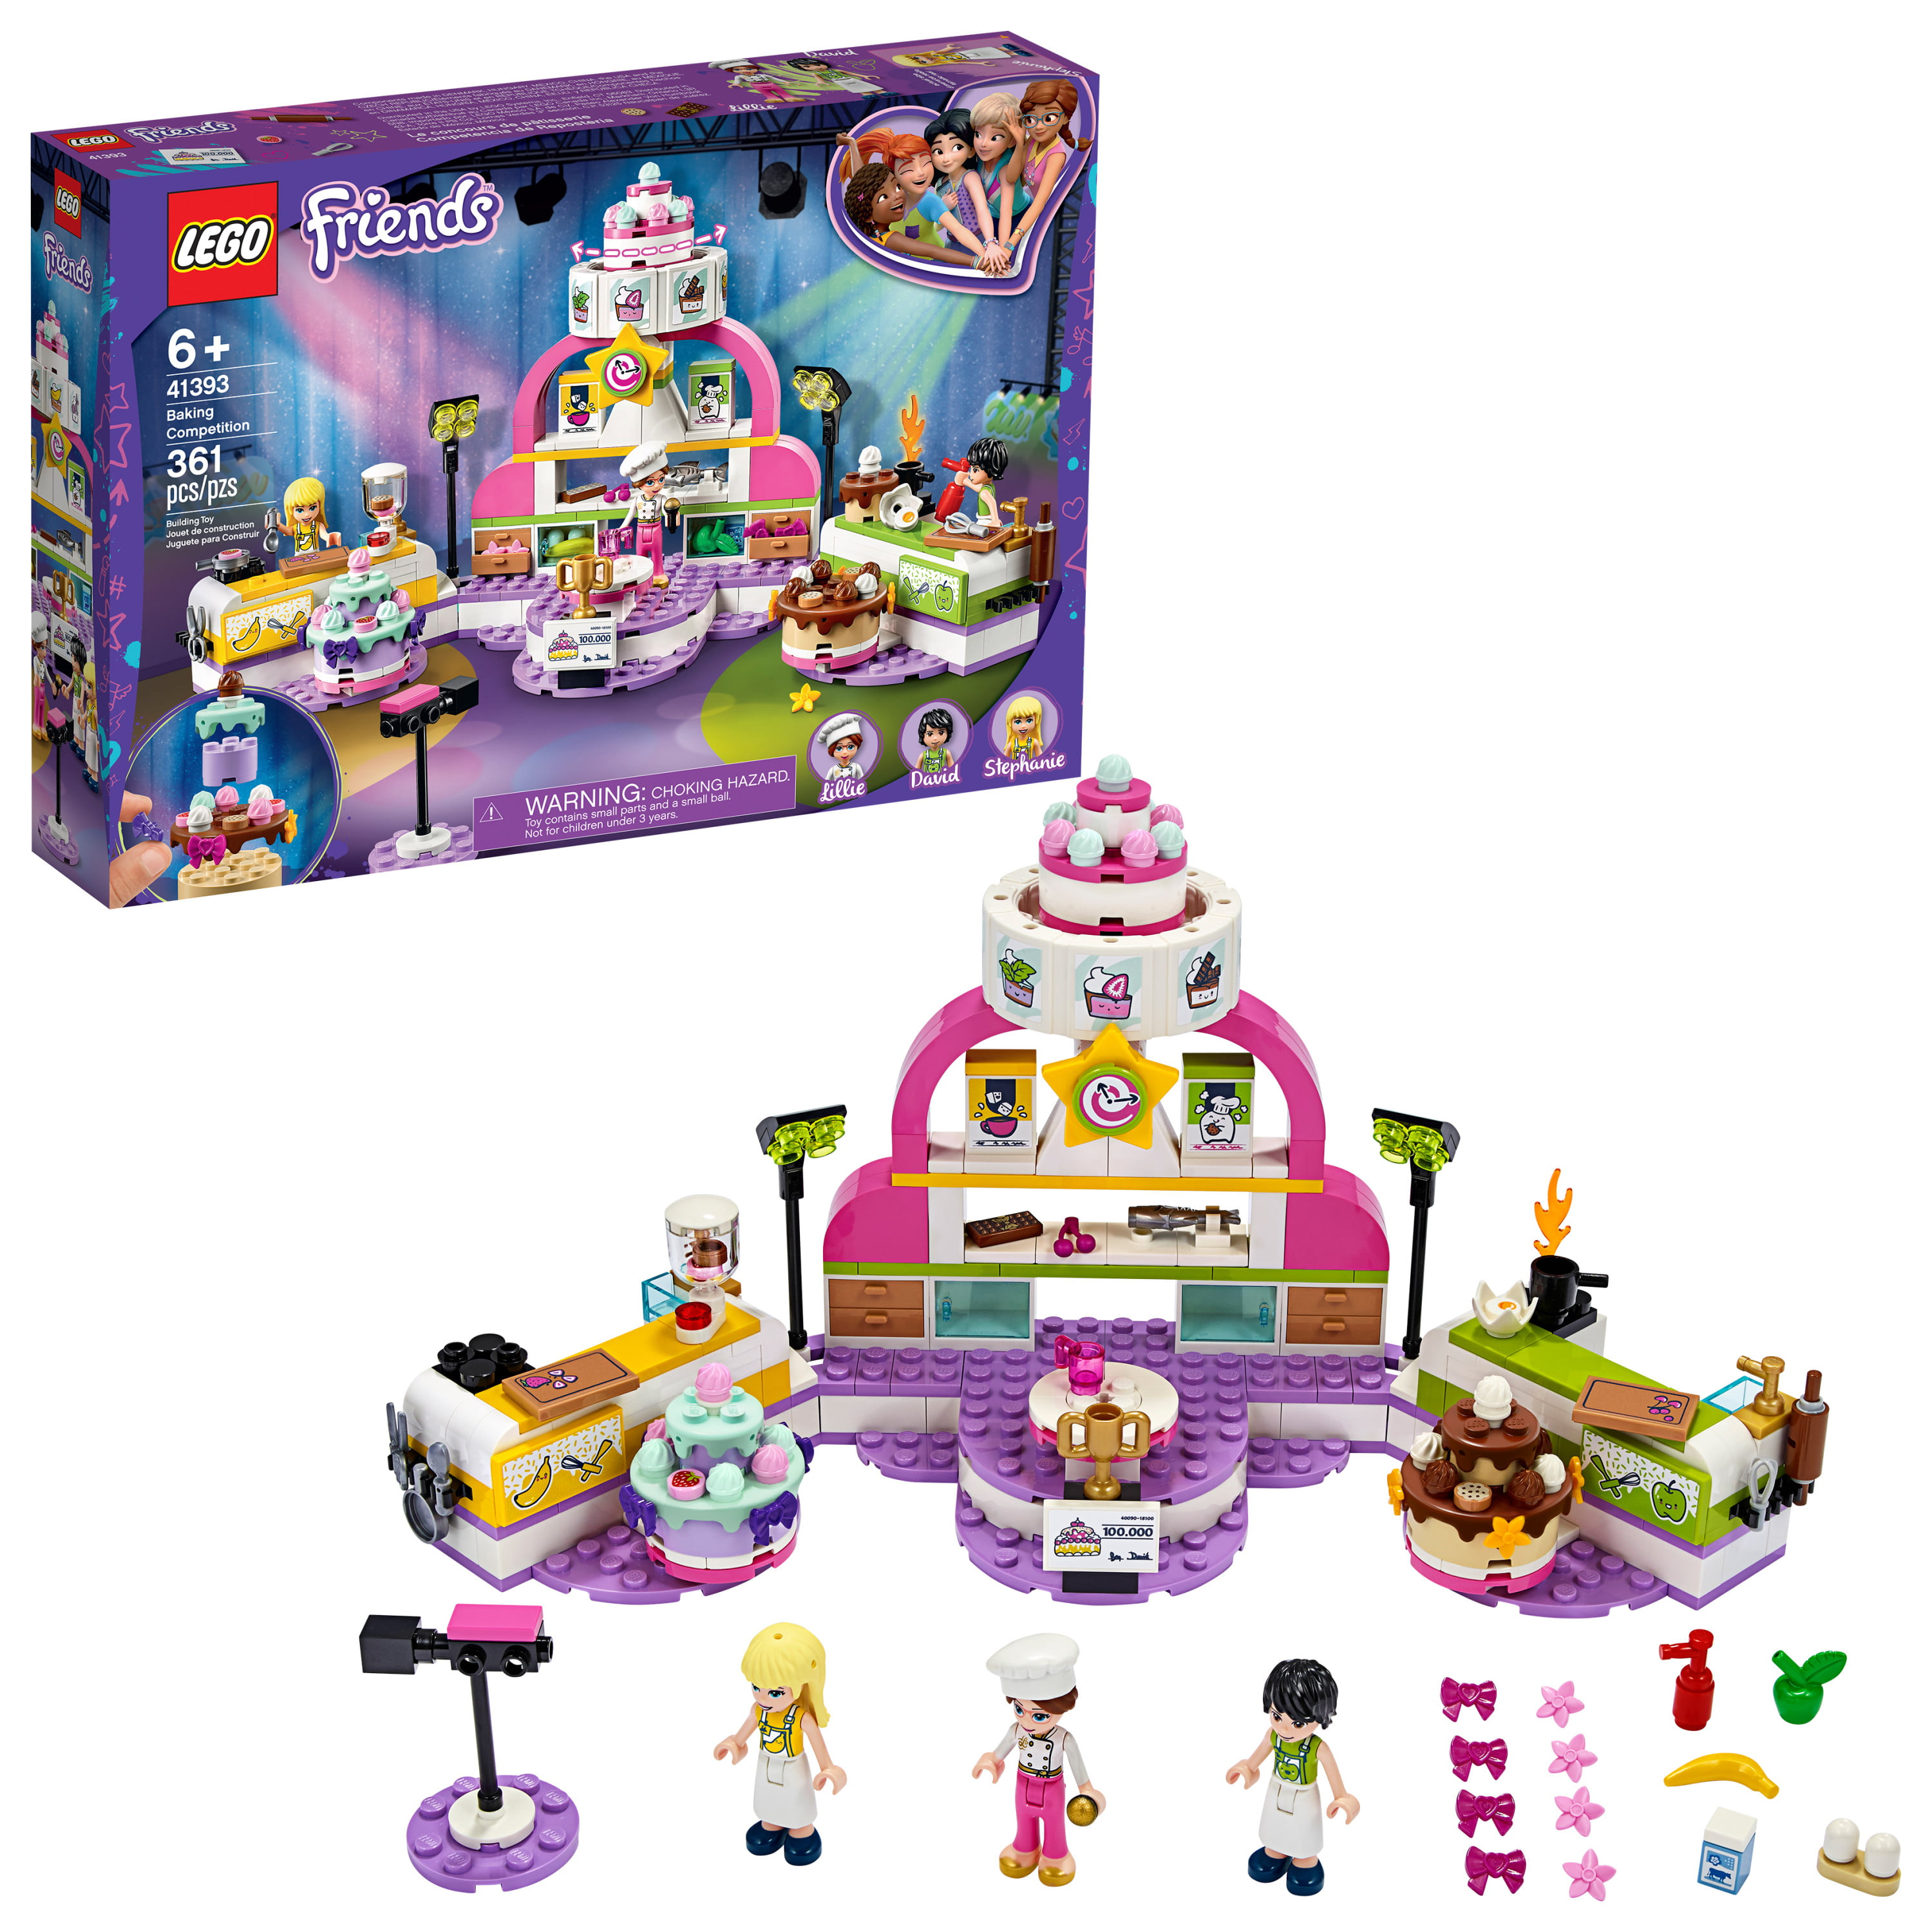 41395 LEGO Friends Friendship Bus 778 Pieces Age 8 Years+